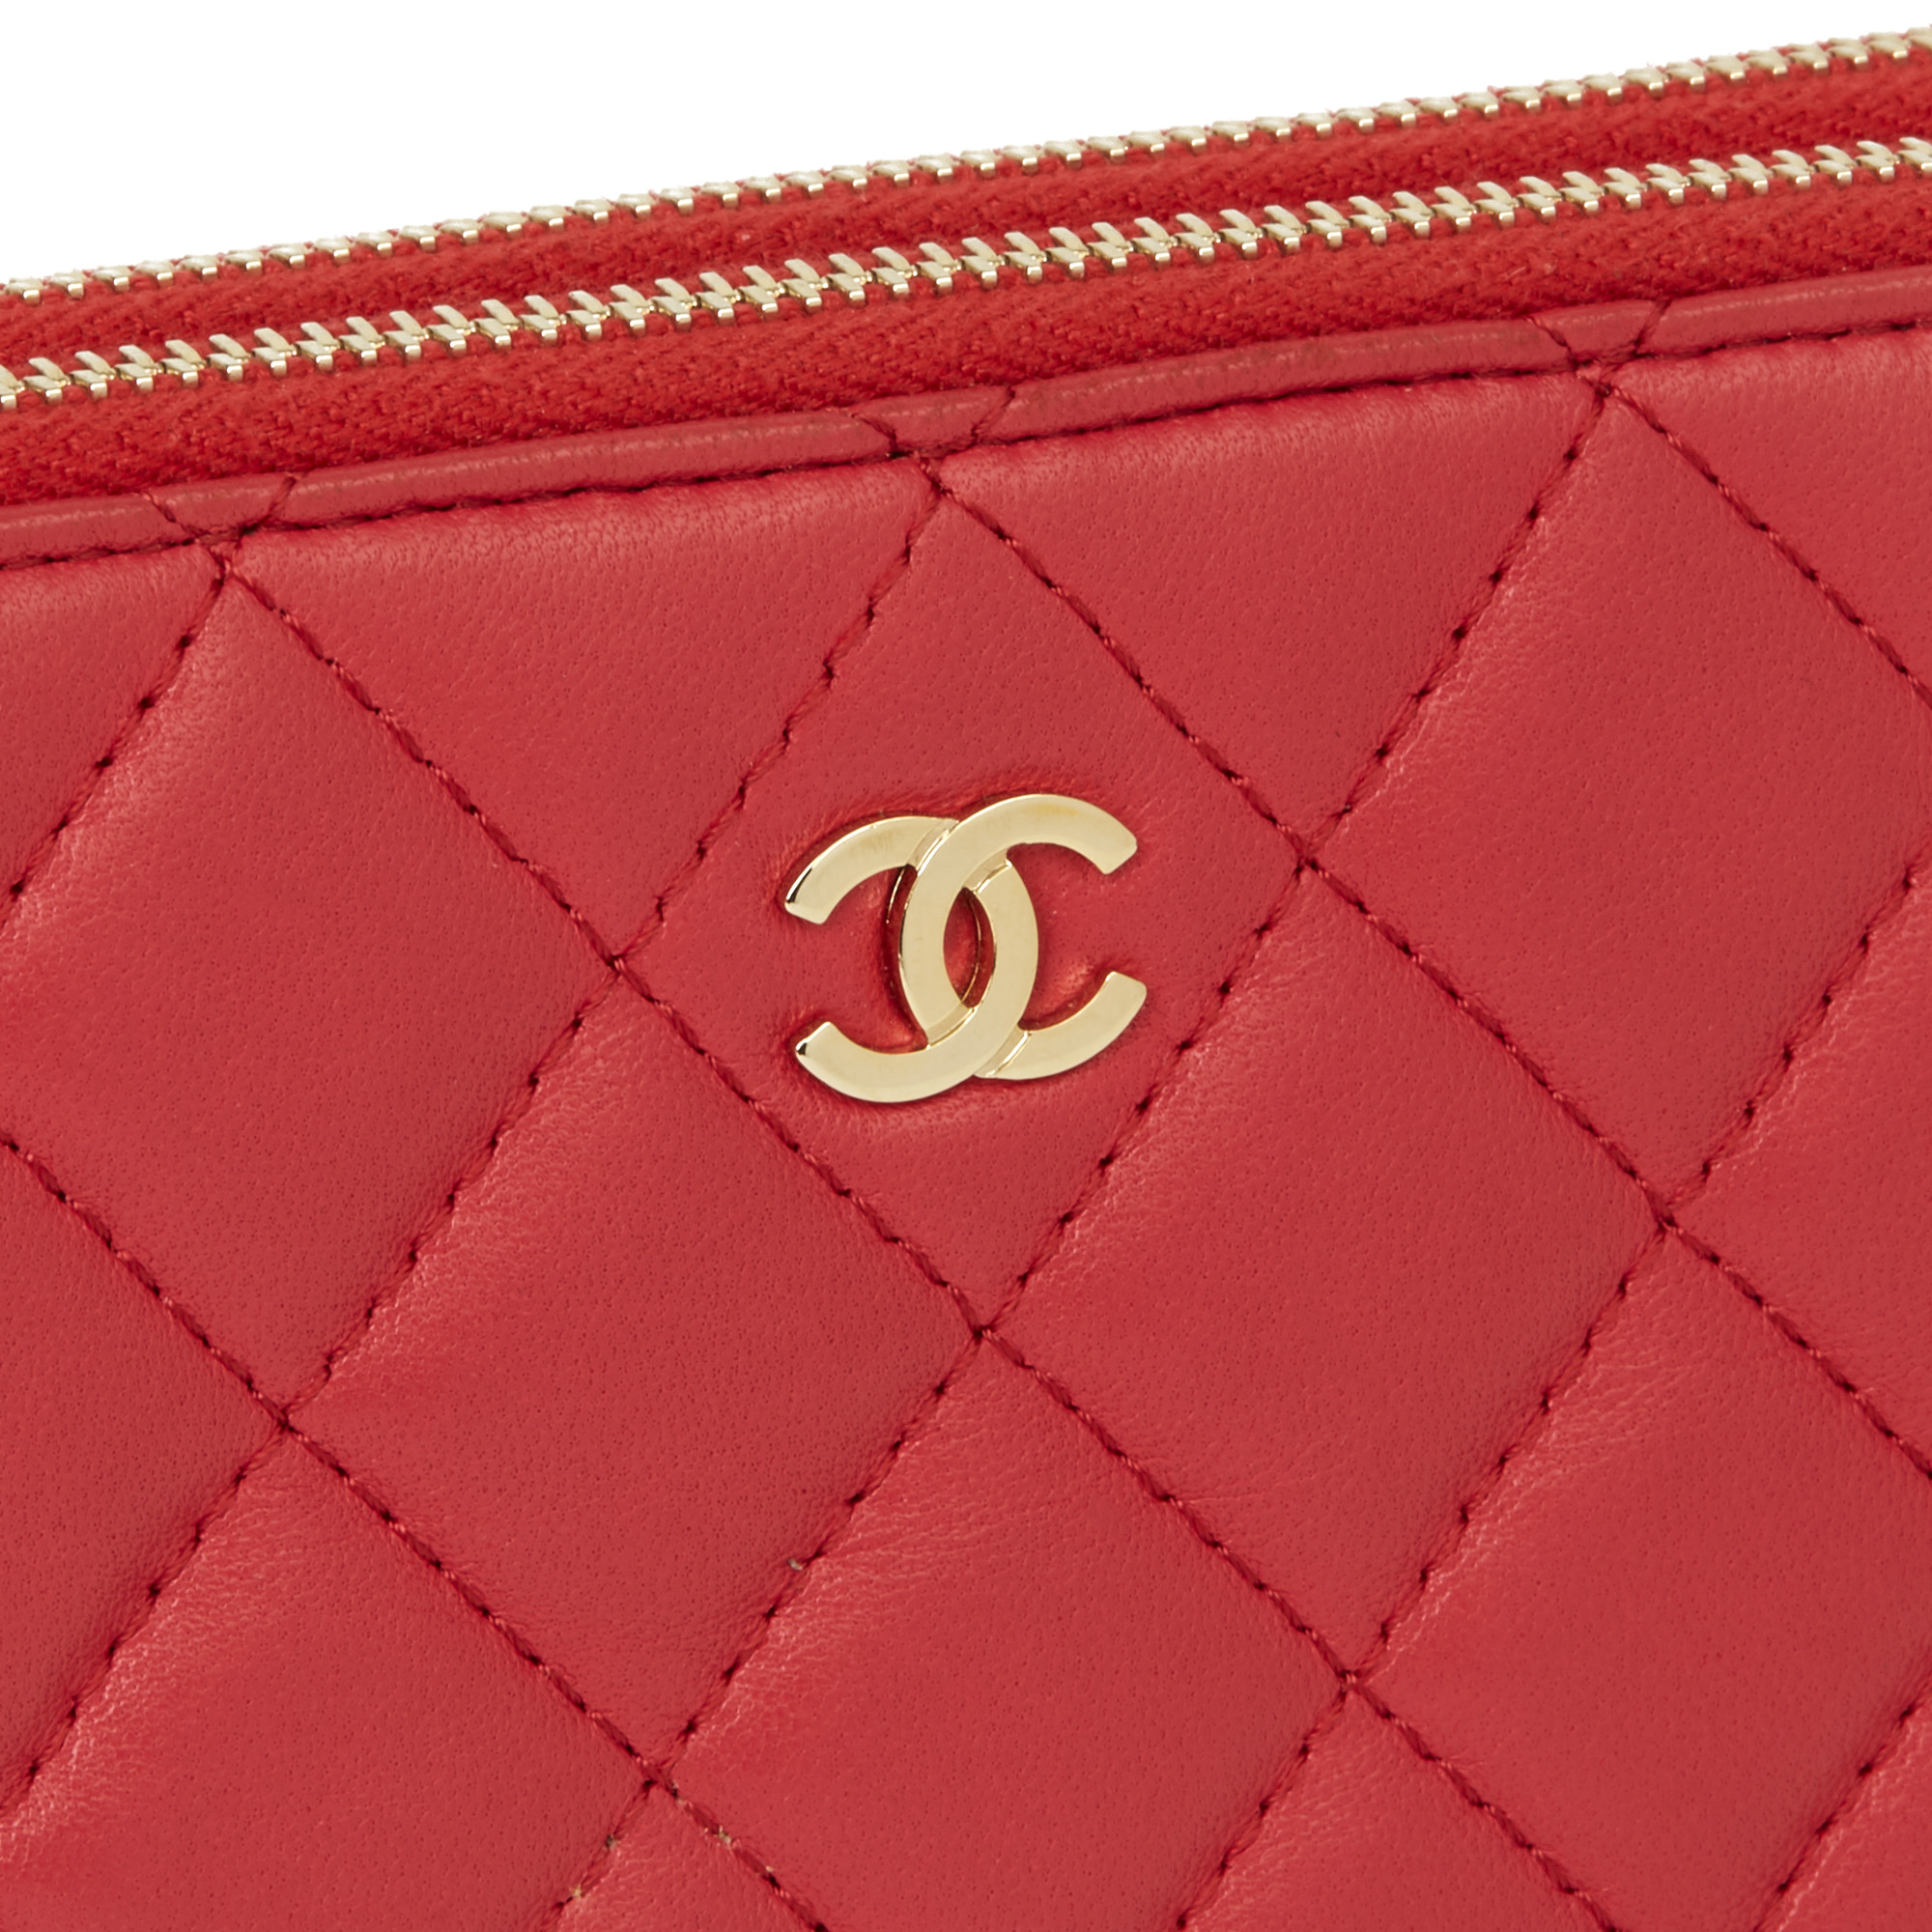 Chanel Red Quilted Lambskin Double Zip Wallet-on-Chain WOC - Image 8 of 11